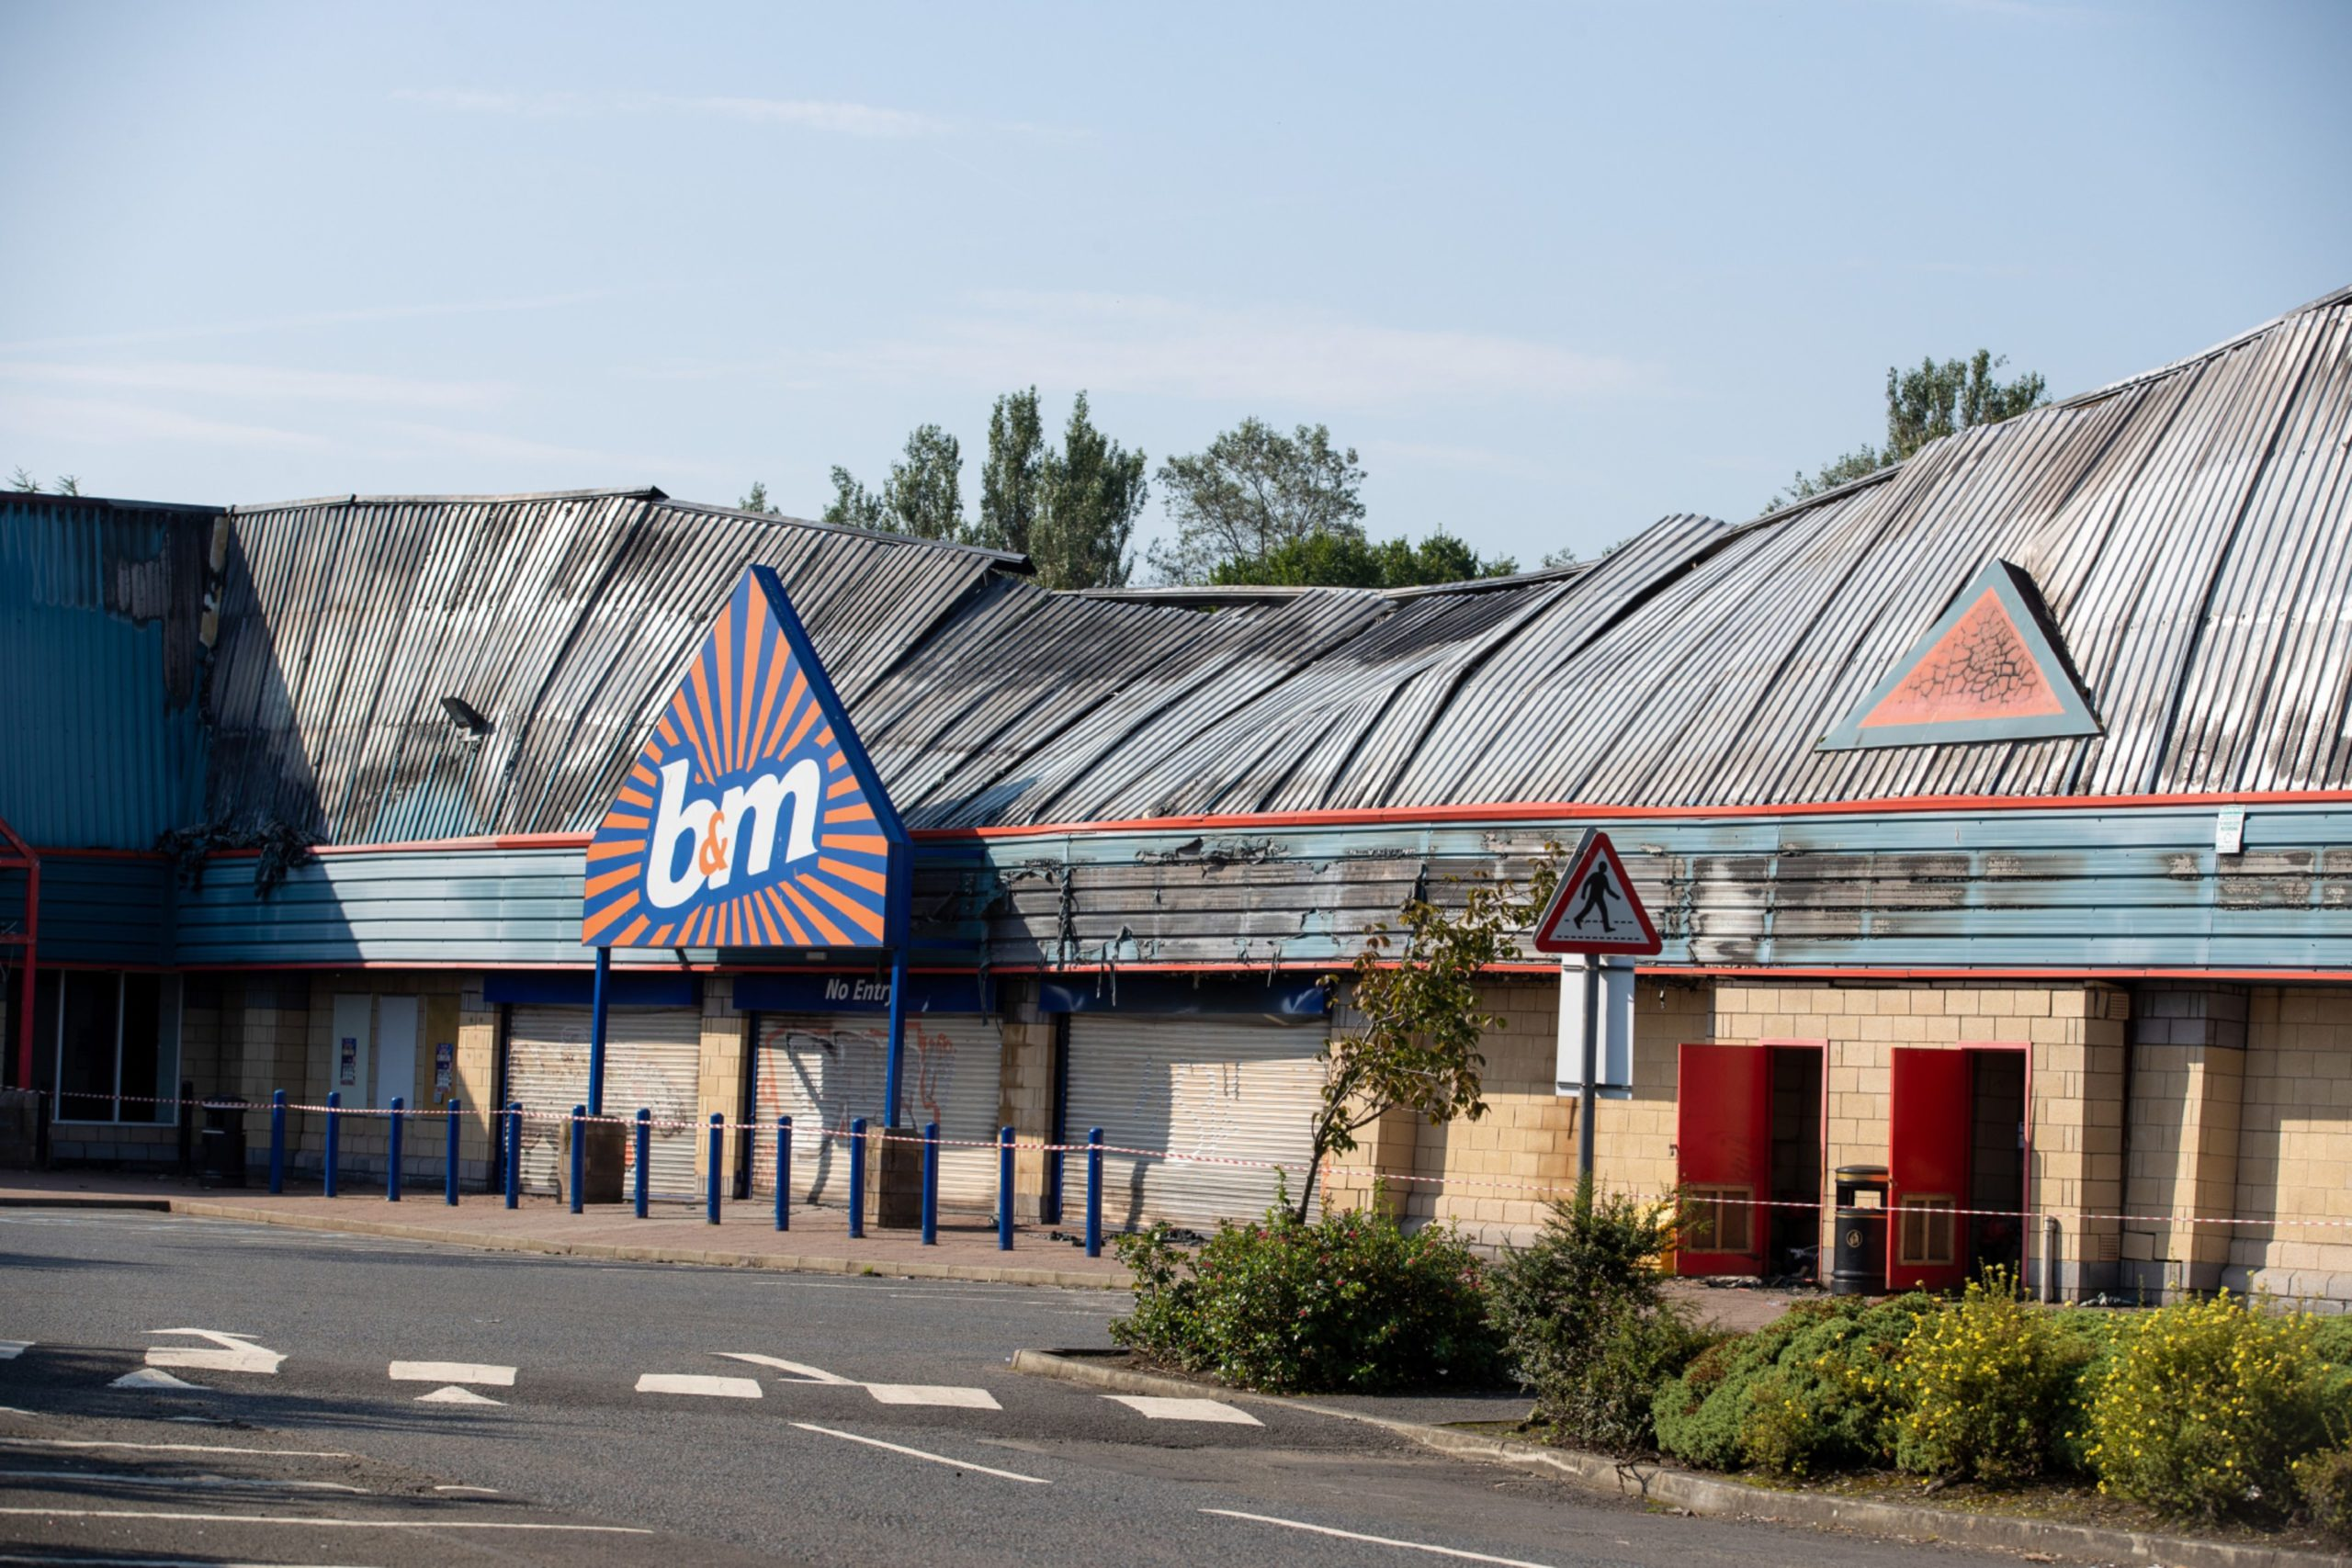 B M To Reopen In Perth In May After Store Was Destroyed In Fatal Fire